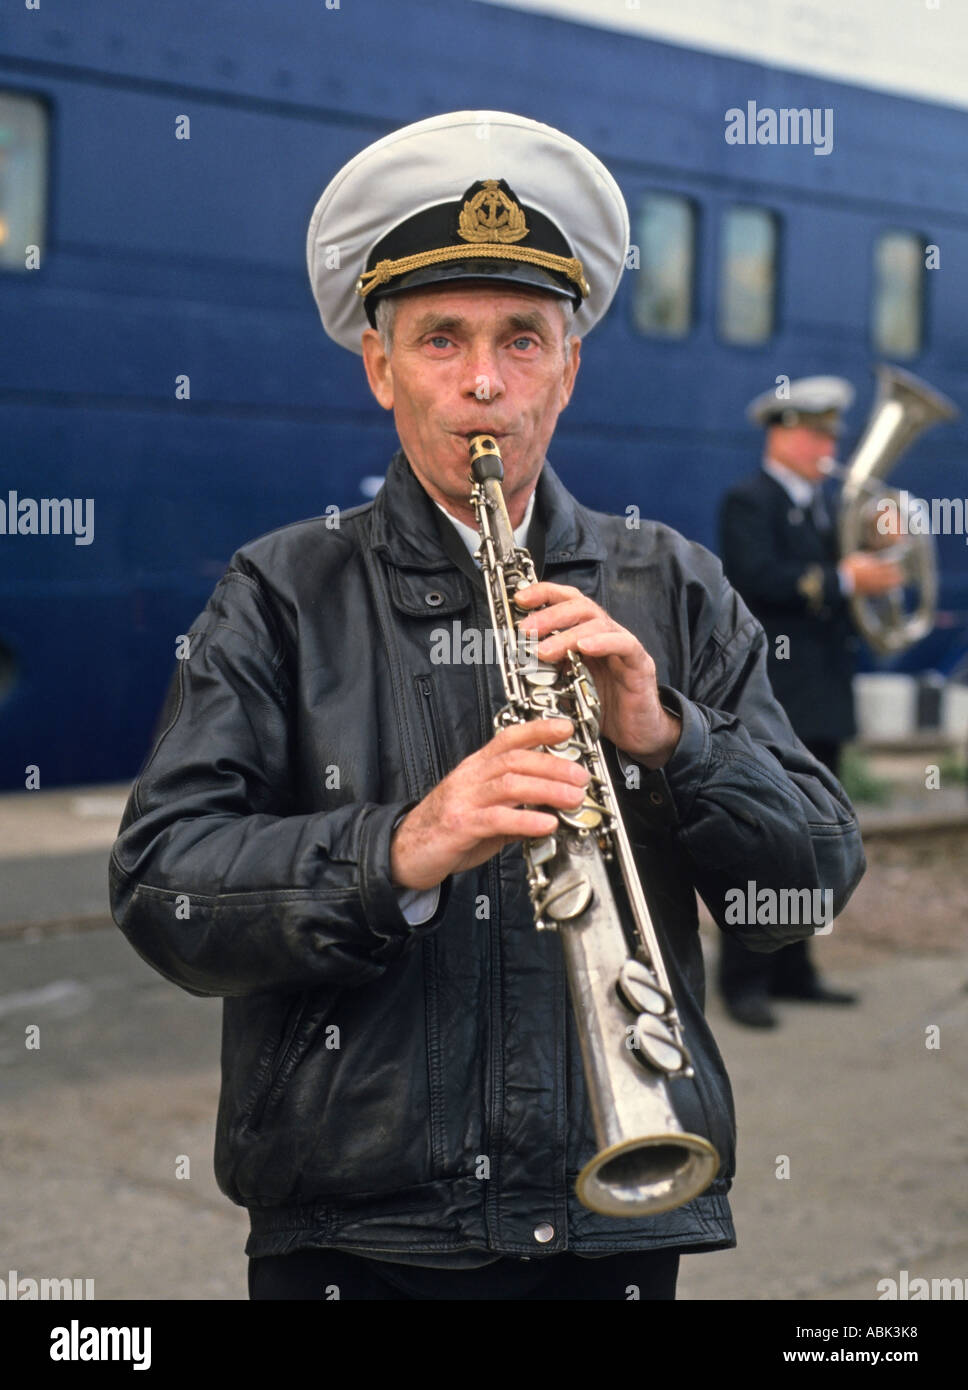 Russian fanfare welcoming cruise ship passengers on the pier of Sankt Petersburg, Russia - Stock Image